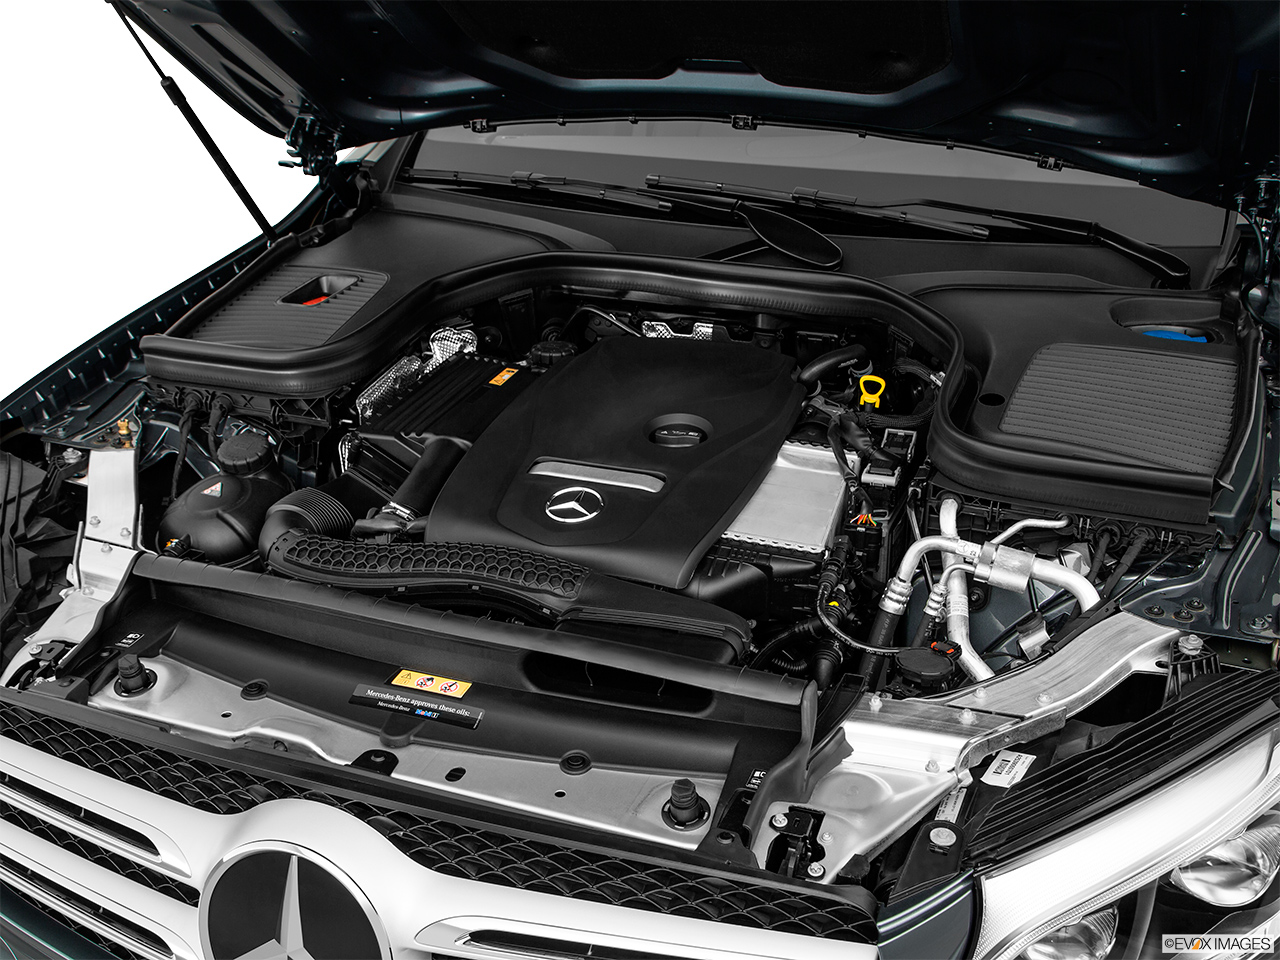 Mercedes benz glc class 2017 glc 300 4matic in bahrain for Mercedes benz engine